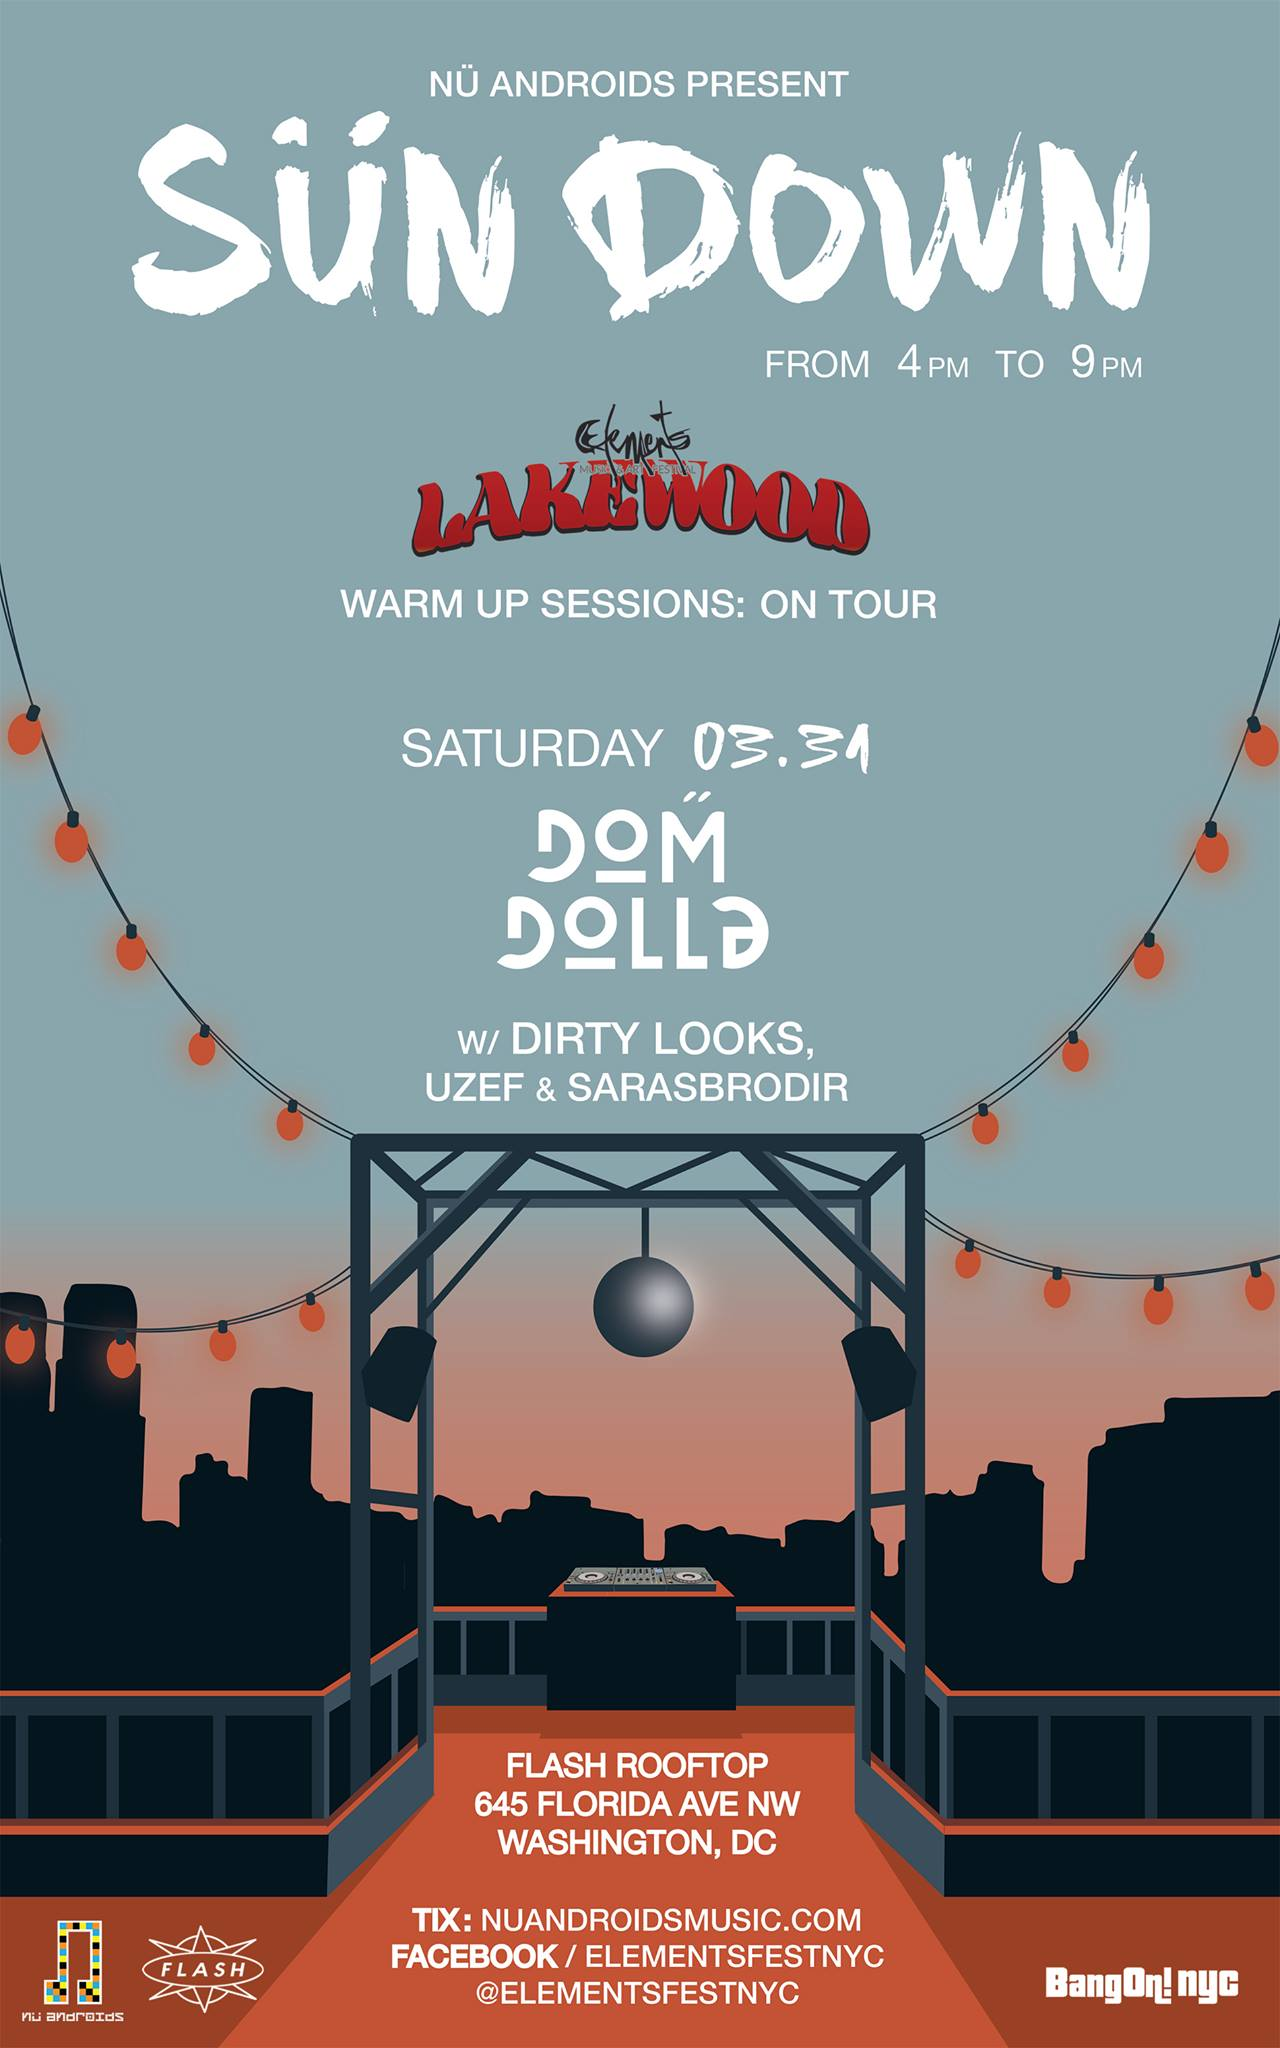 [Early] Lakewood WarmUp Sessions: Dom Dolla event thumbnail